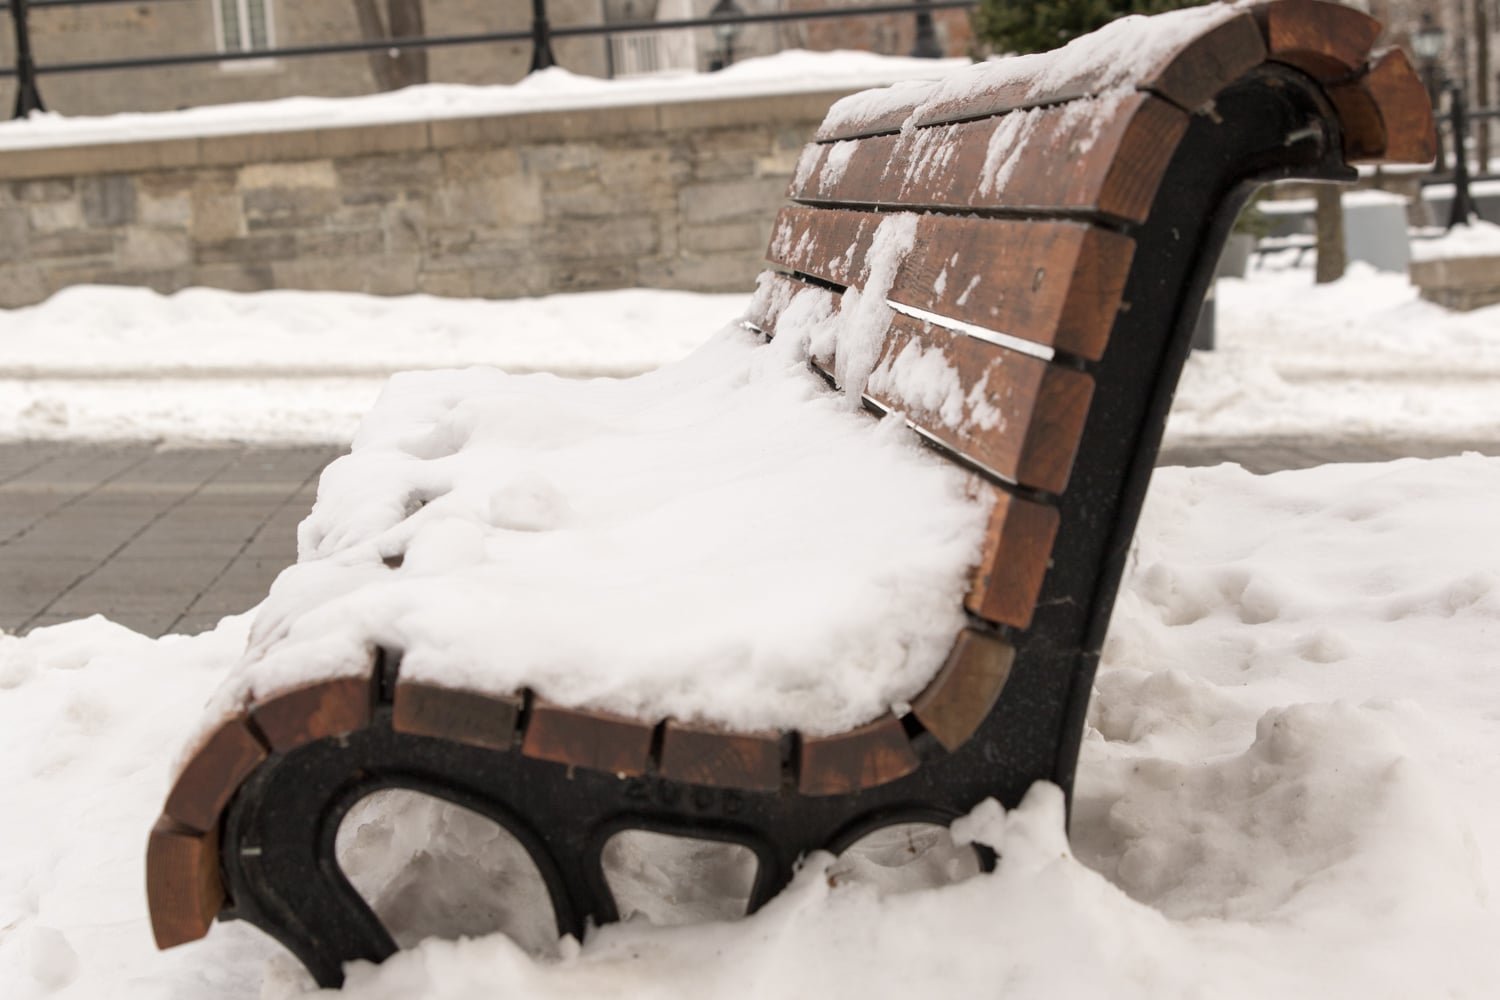 Snow covered bench in Old Montreal